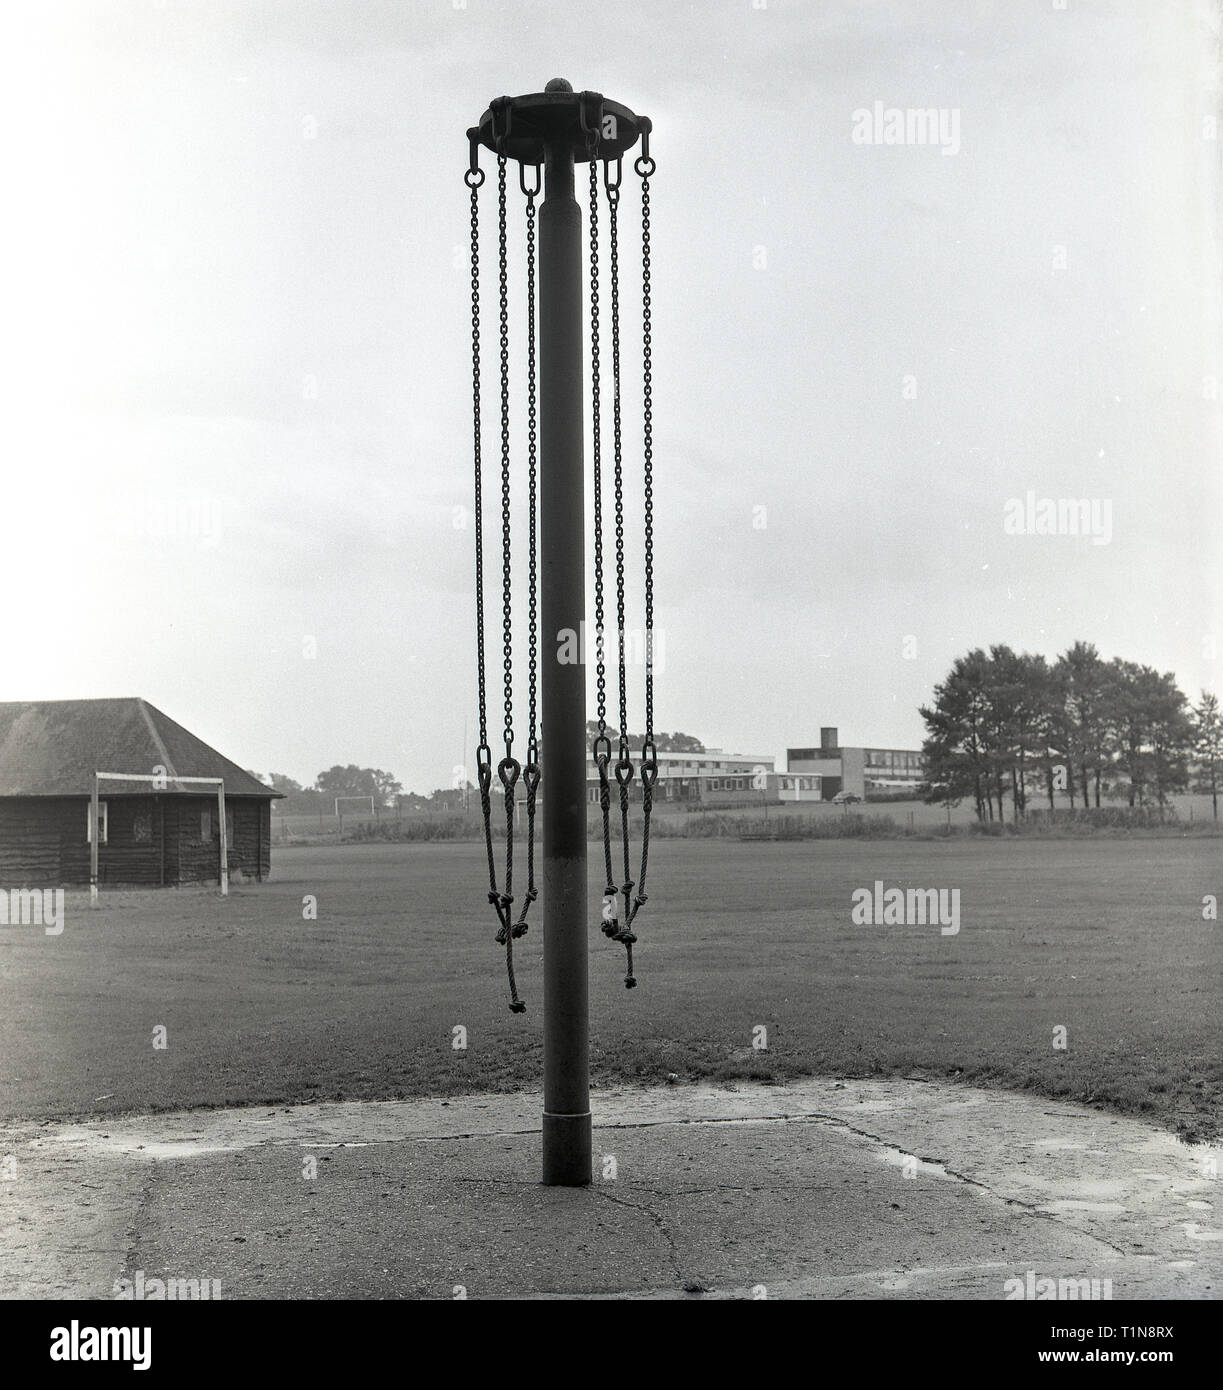 1967, a metal maypole playground swing standing at an empty